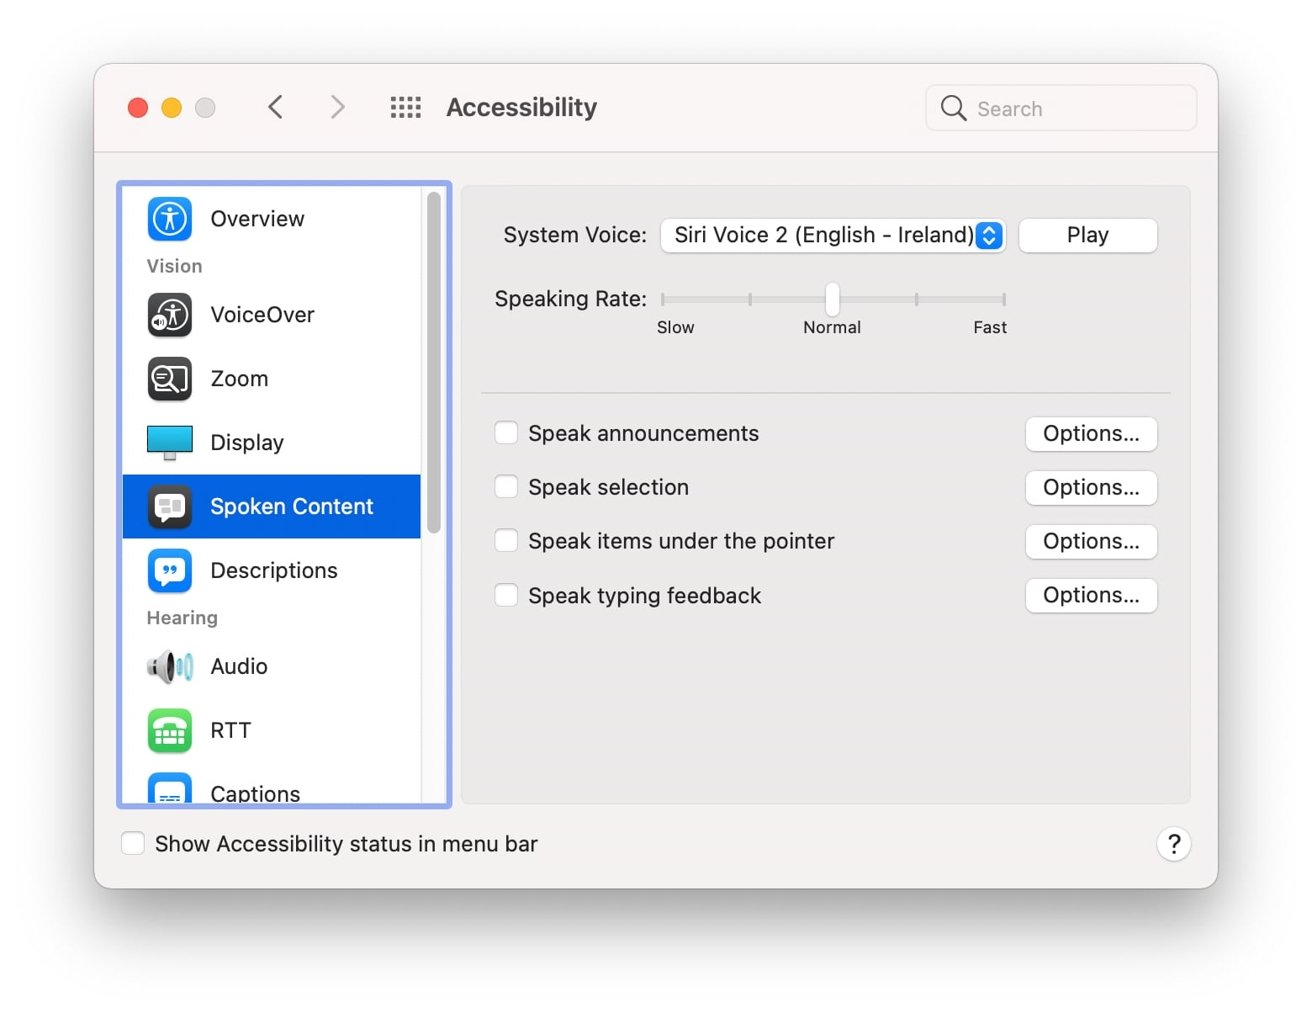 The Spoken Content menu is within Accessibility in System Preferences.